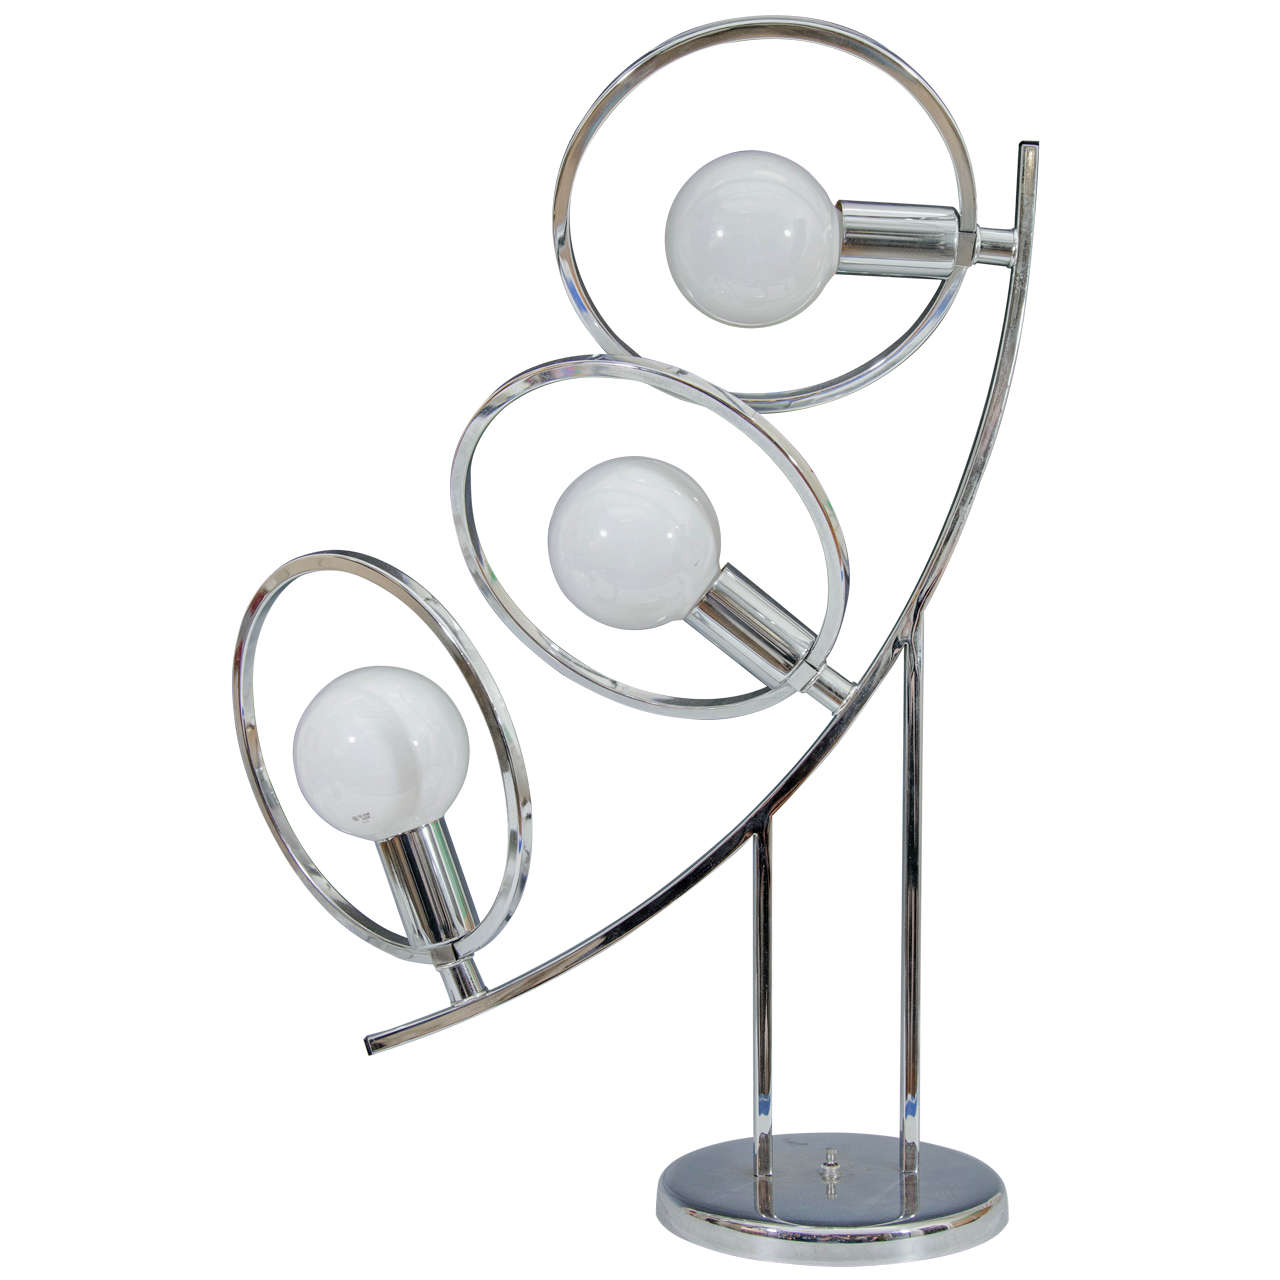 Midcentury Sculptural Chrome, Three Light Table Lamp